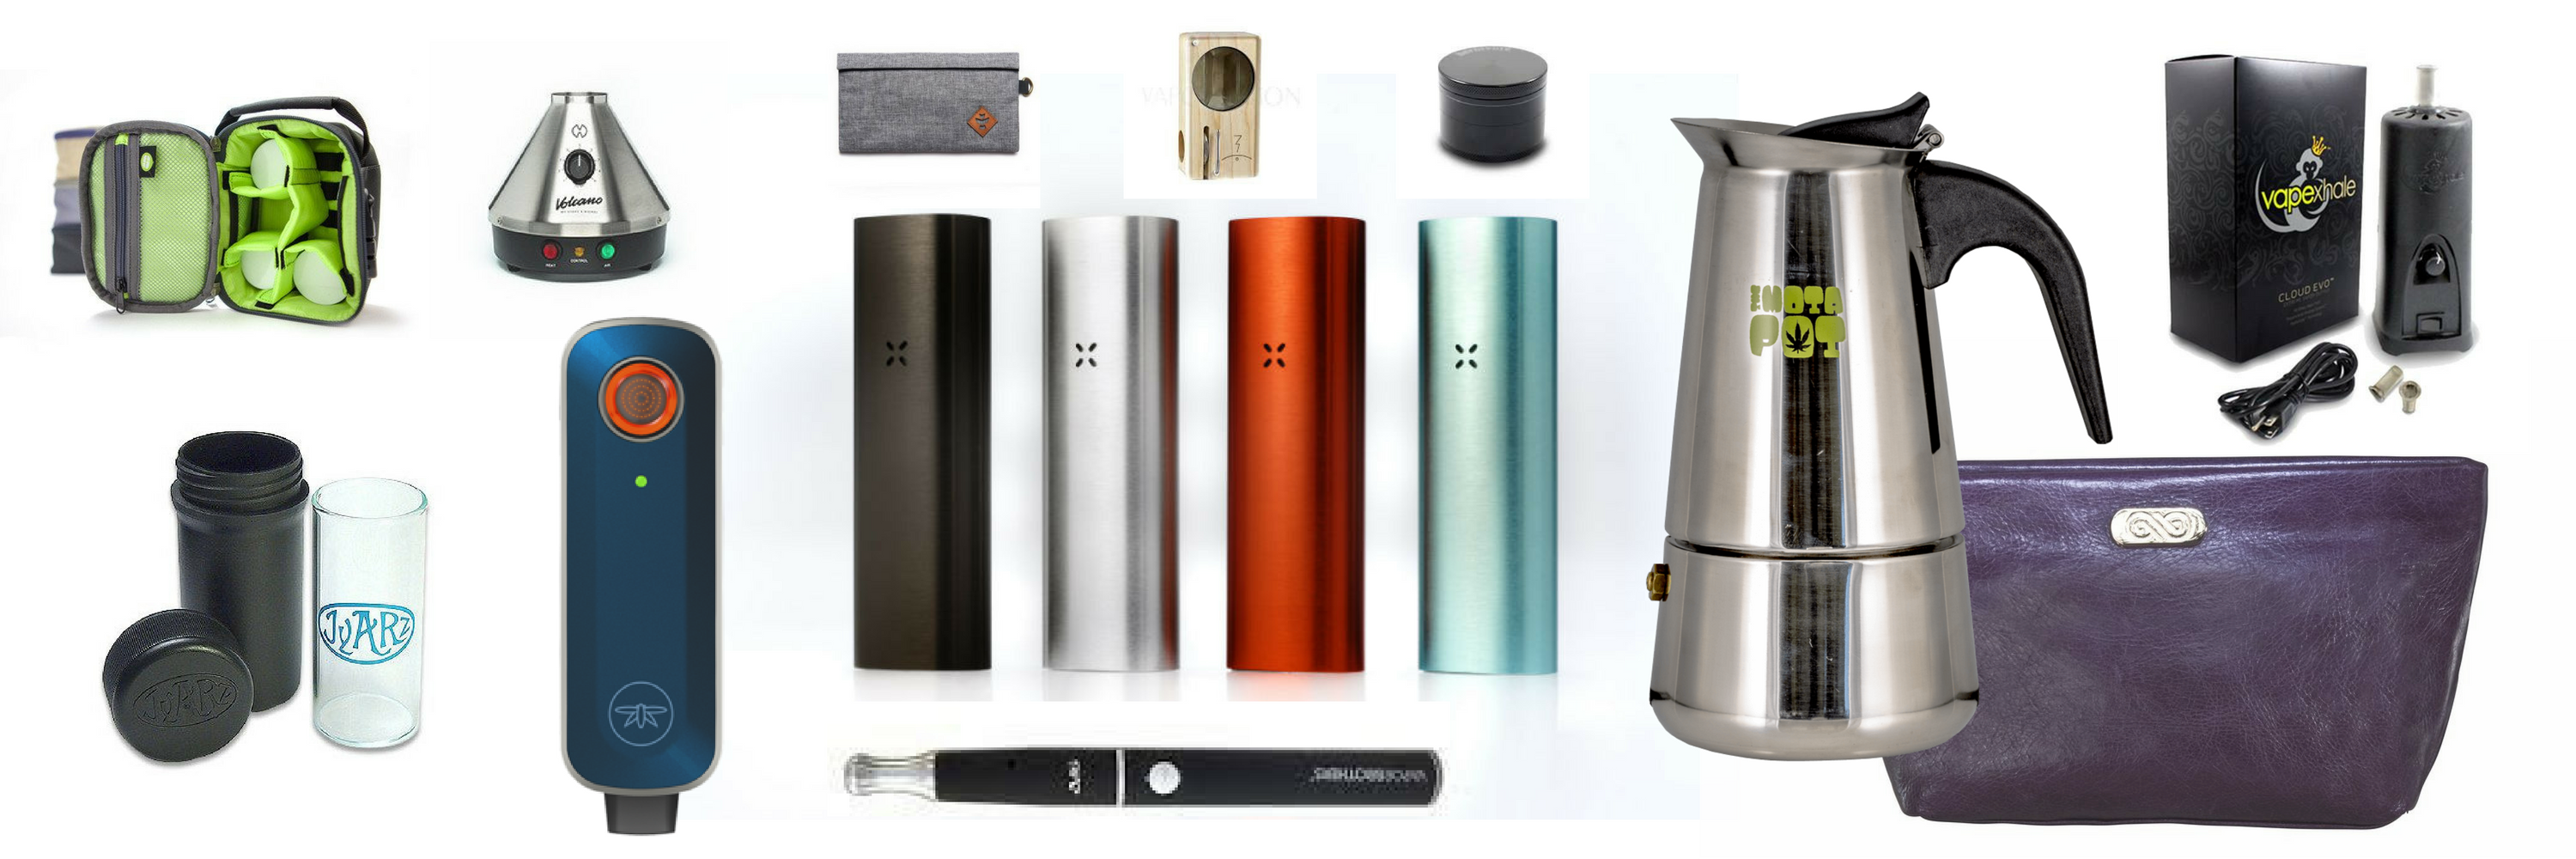 Vapes & Accessories from Healthy Headie Lifestyle Now Available Here!